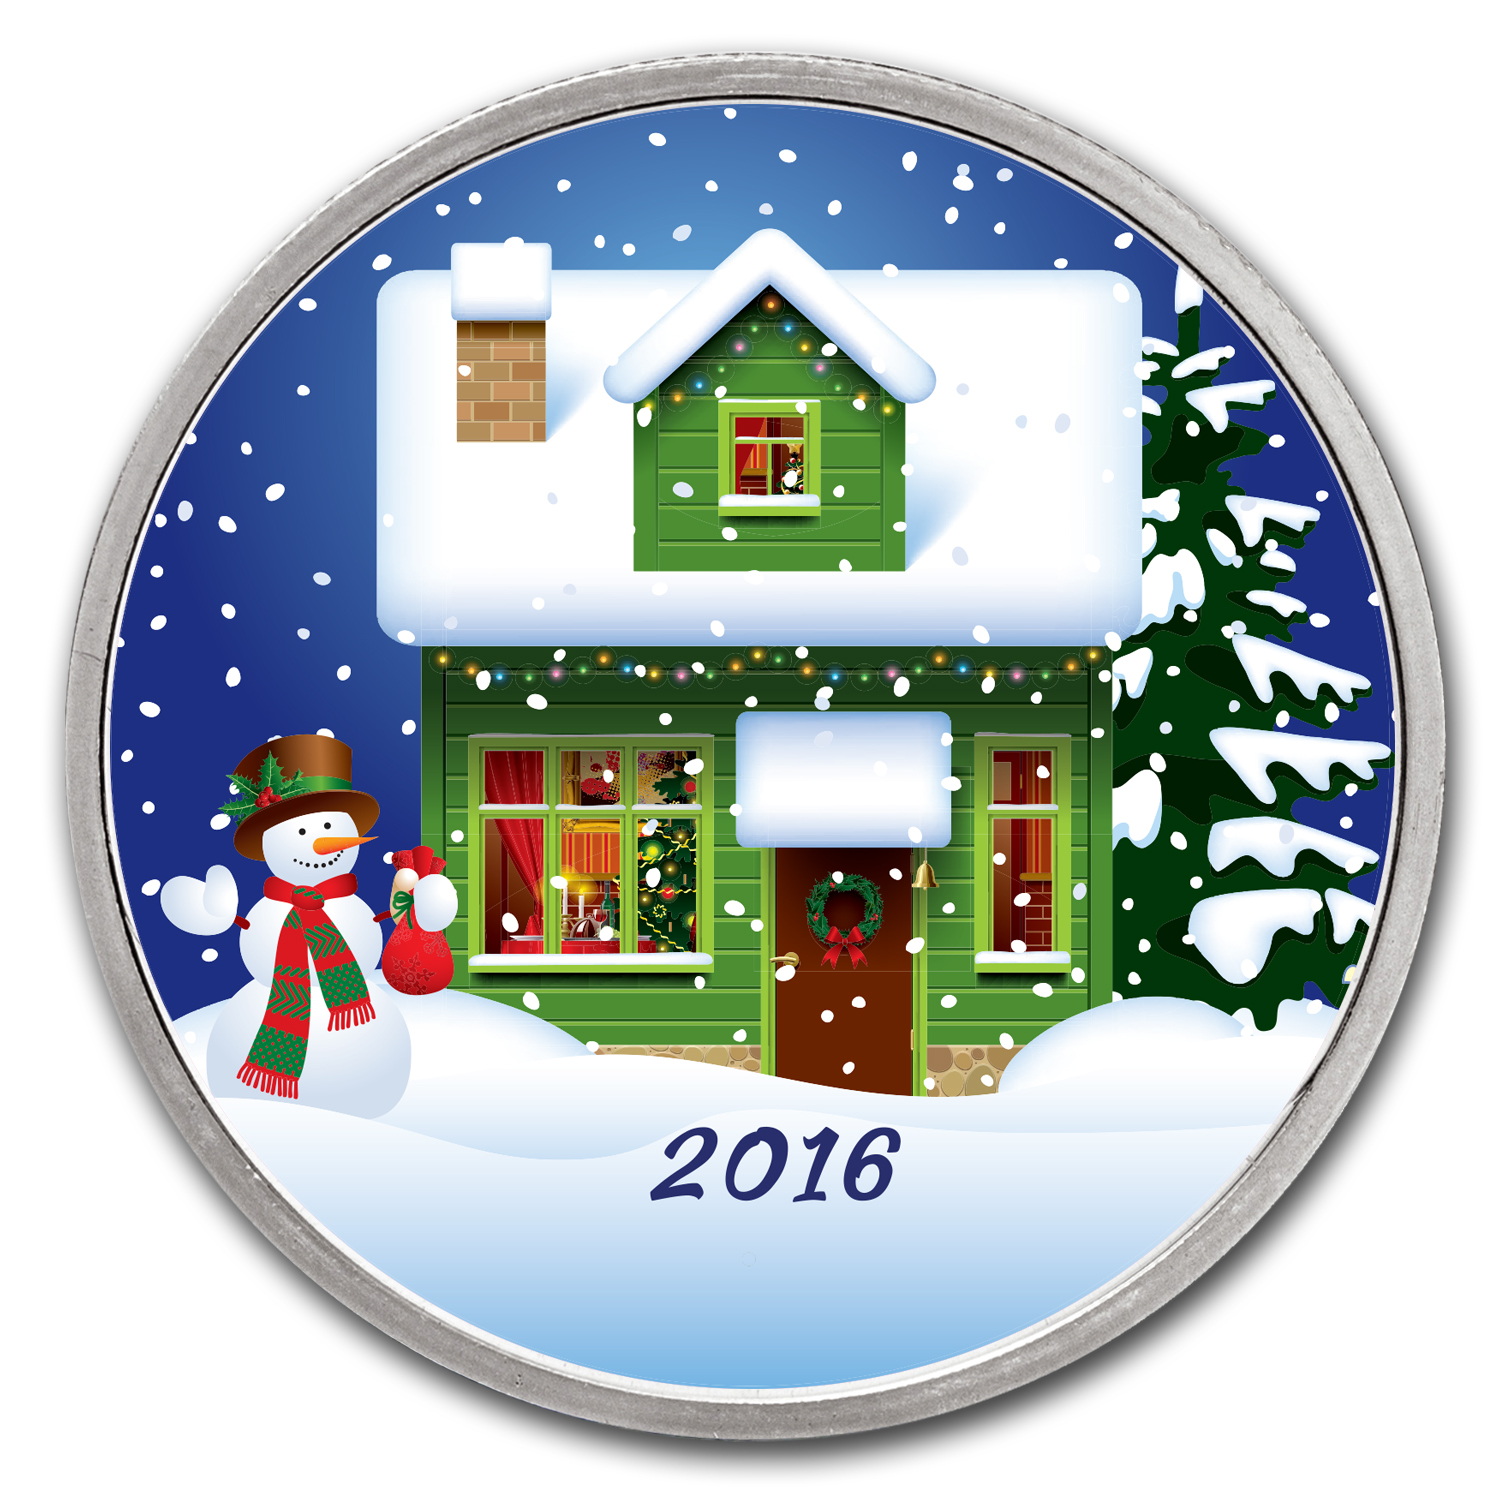 1 oz Silver Colorized Round - APMEX (Cozy Christmas Night)